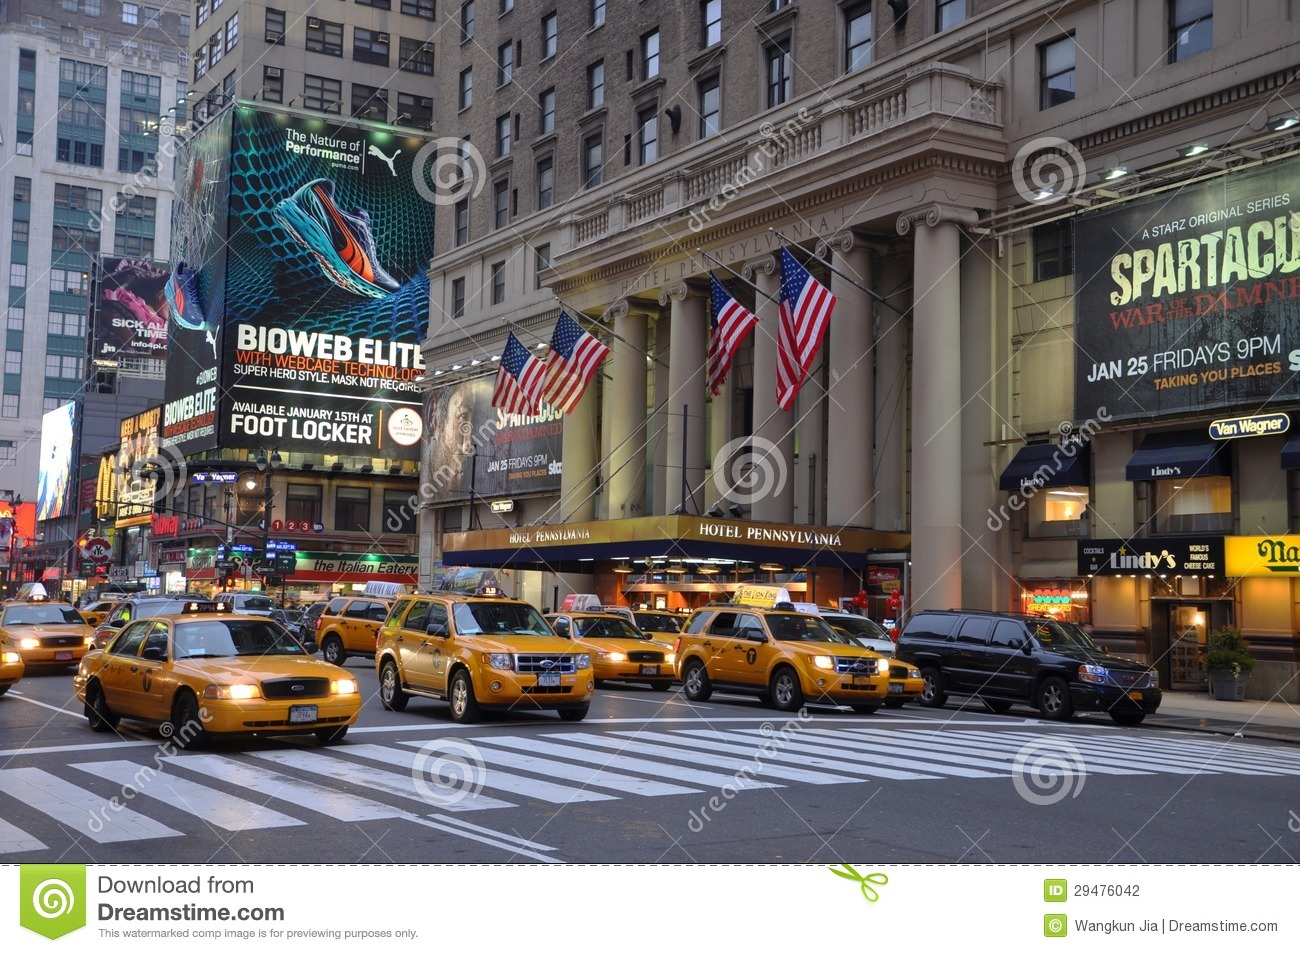 Where Is Hotel Pennsylvania In New York